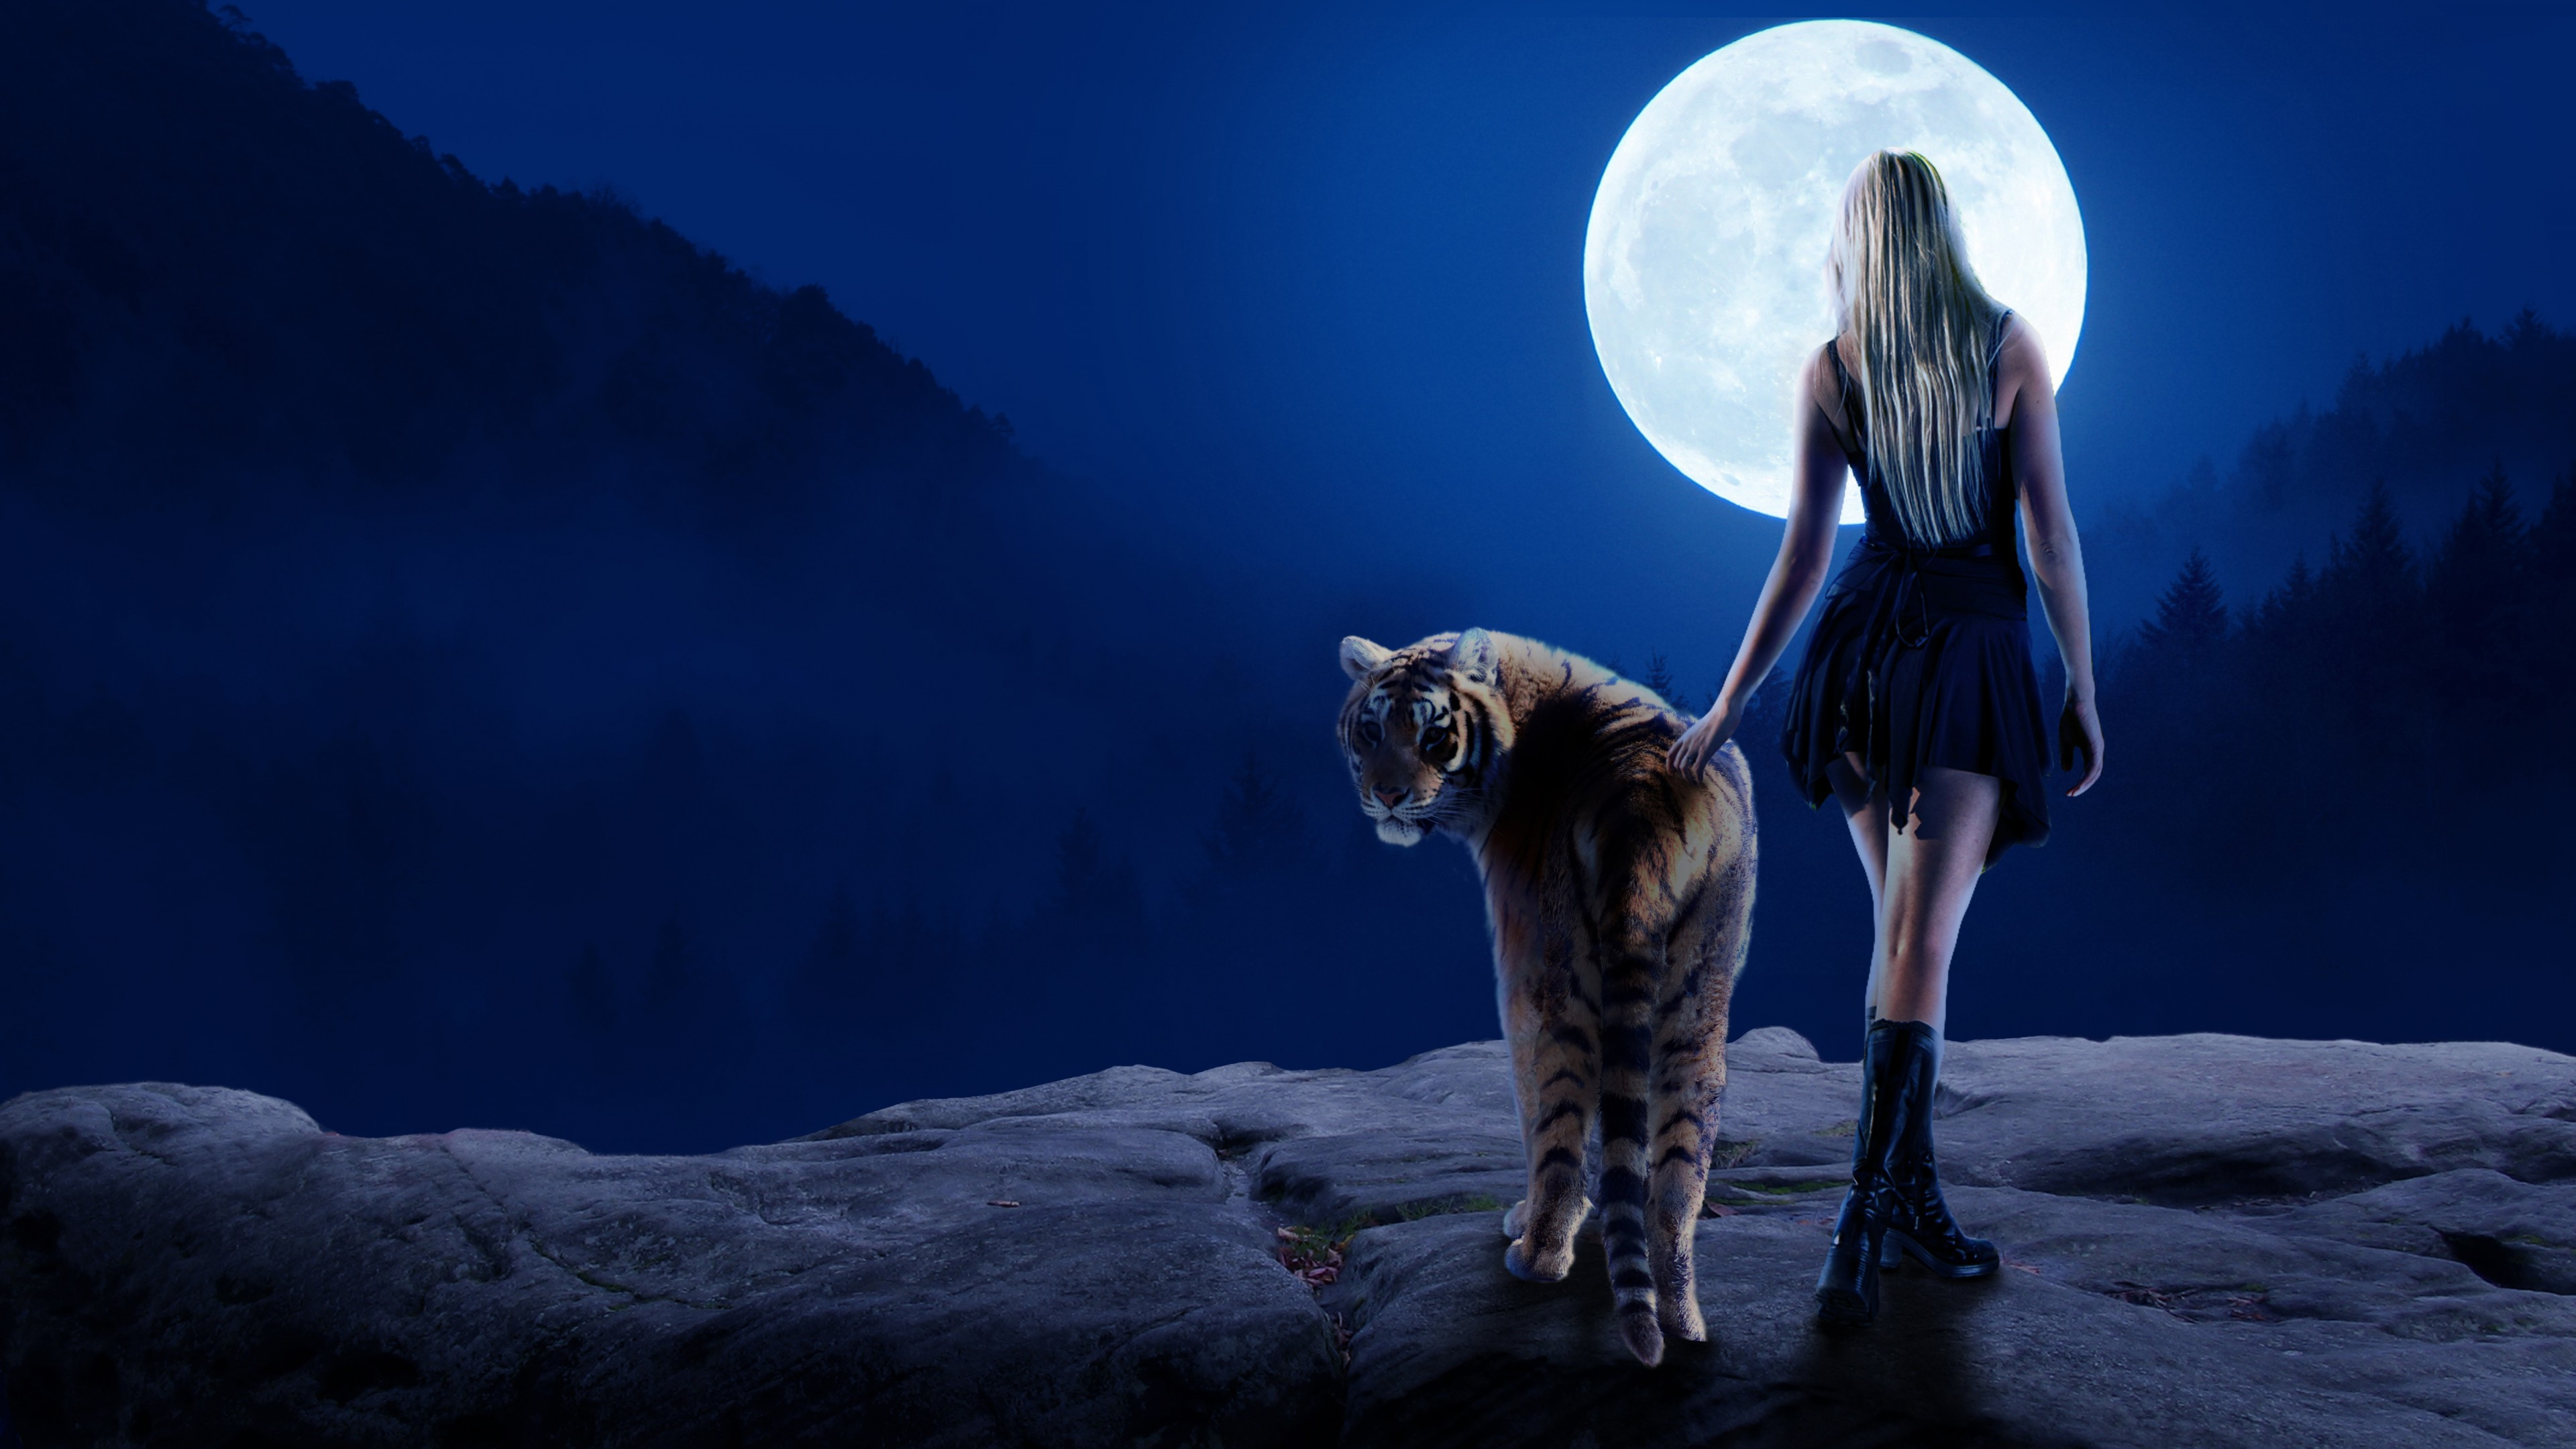 Tiger Girl Moon 4k Hd Artist 4k Wallpapers Images Backgrounds Photos And Pictures